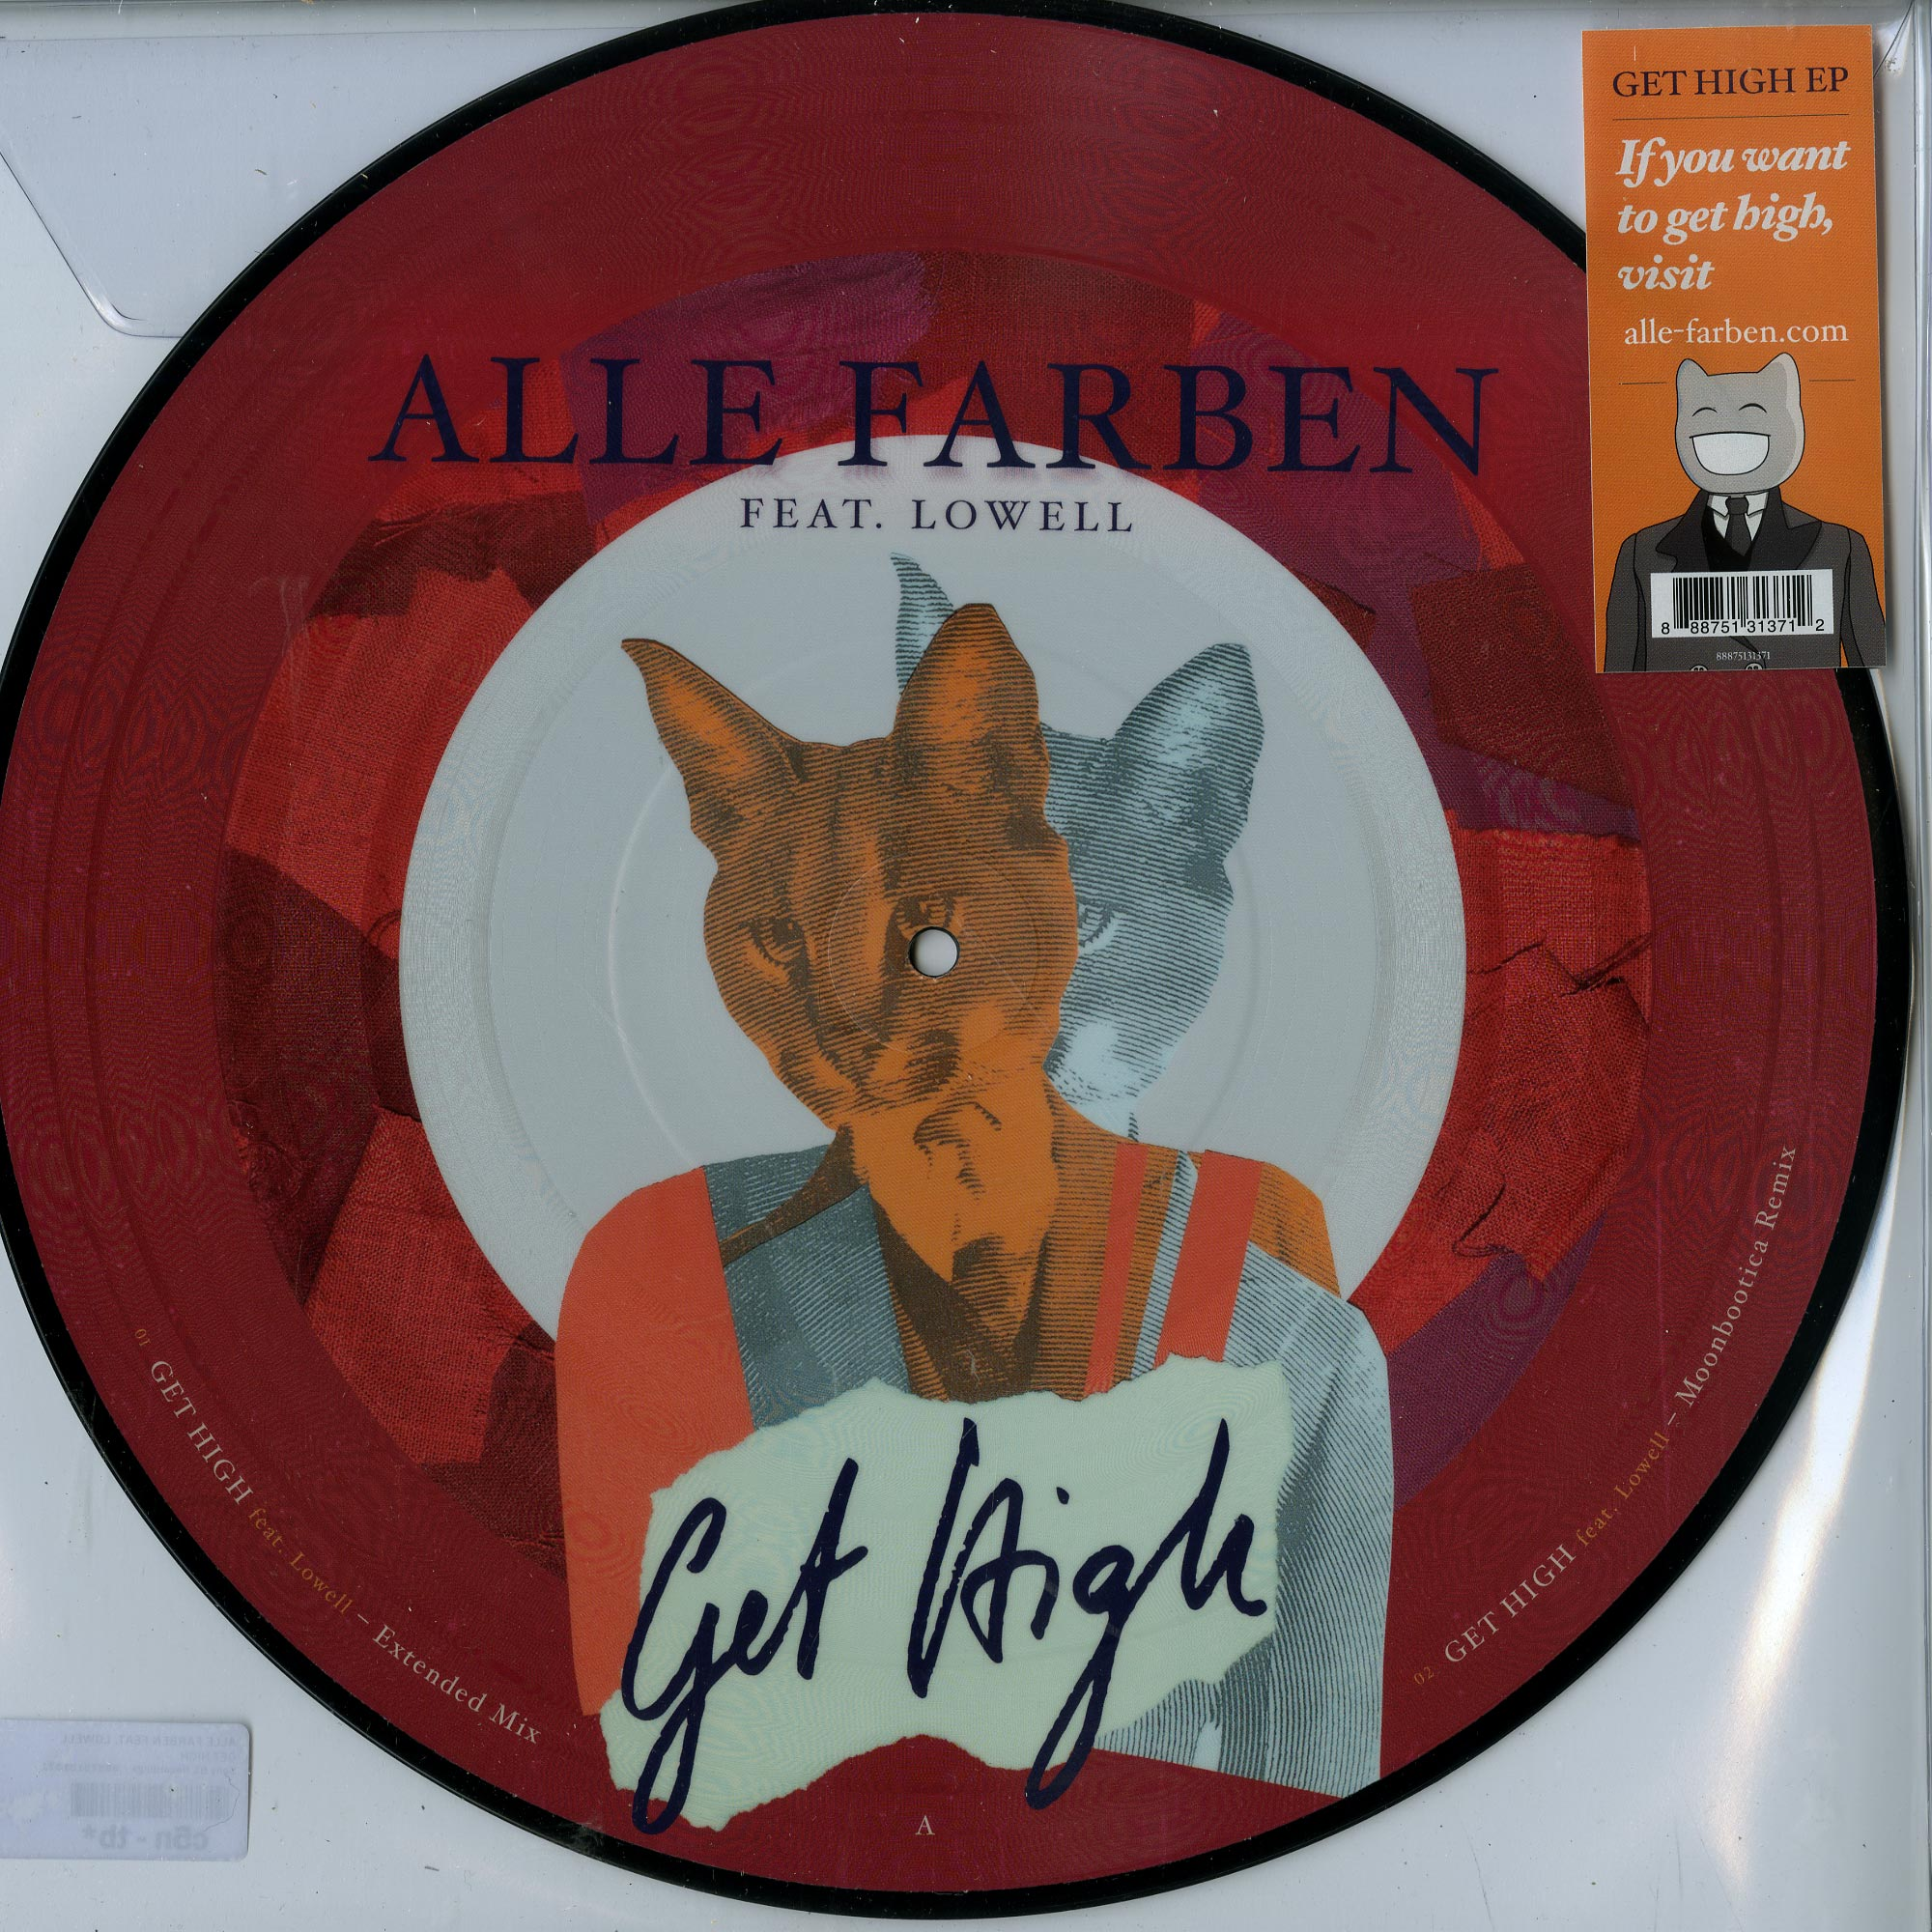 Alle Farben feat. Lowell - GET HIGH EP